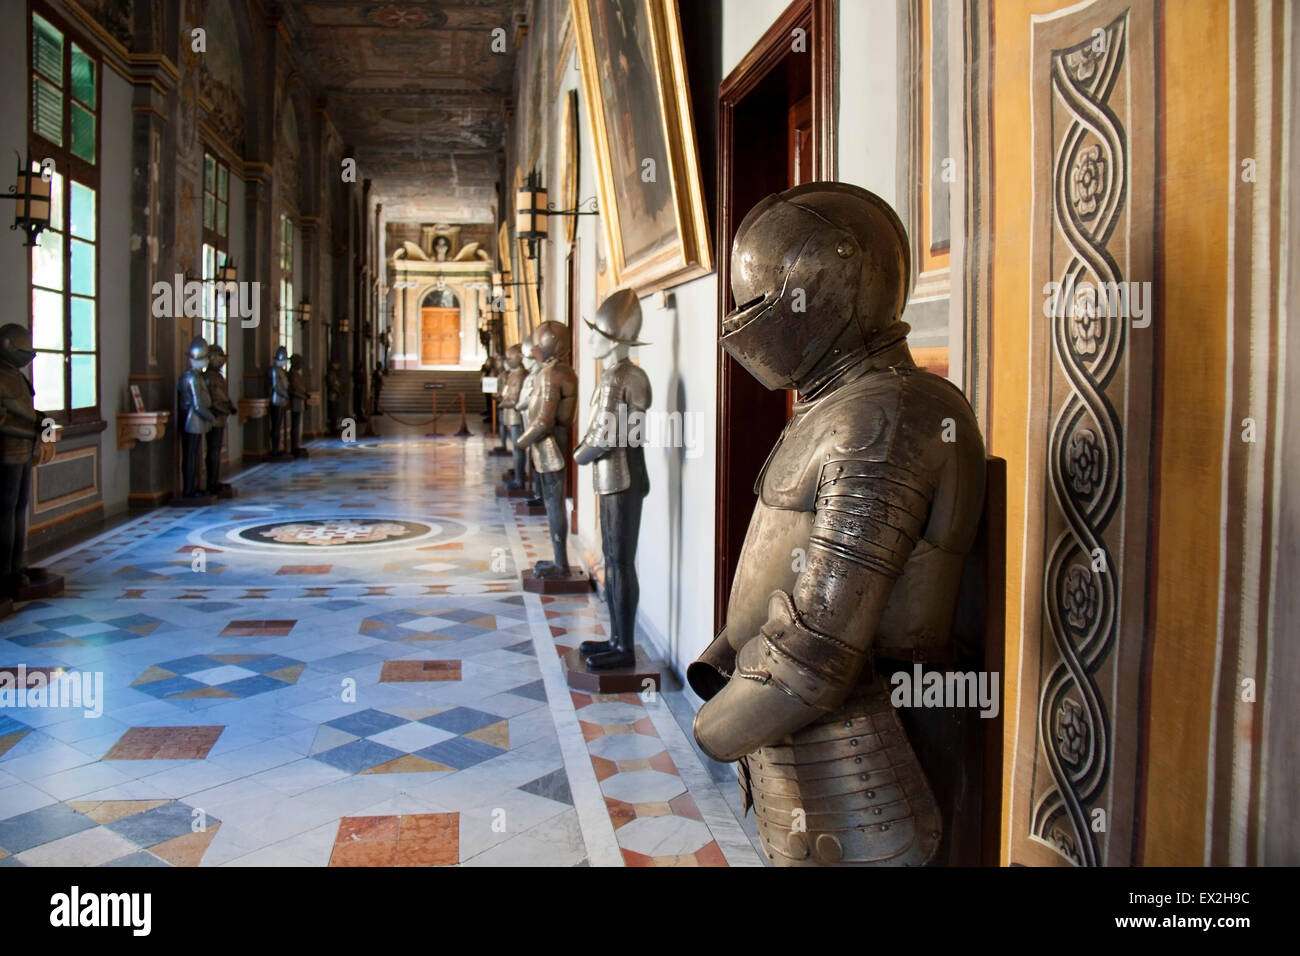 Suits of Armour in Malta's Palace state rooms in Valletta - Stock Image